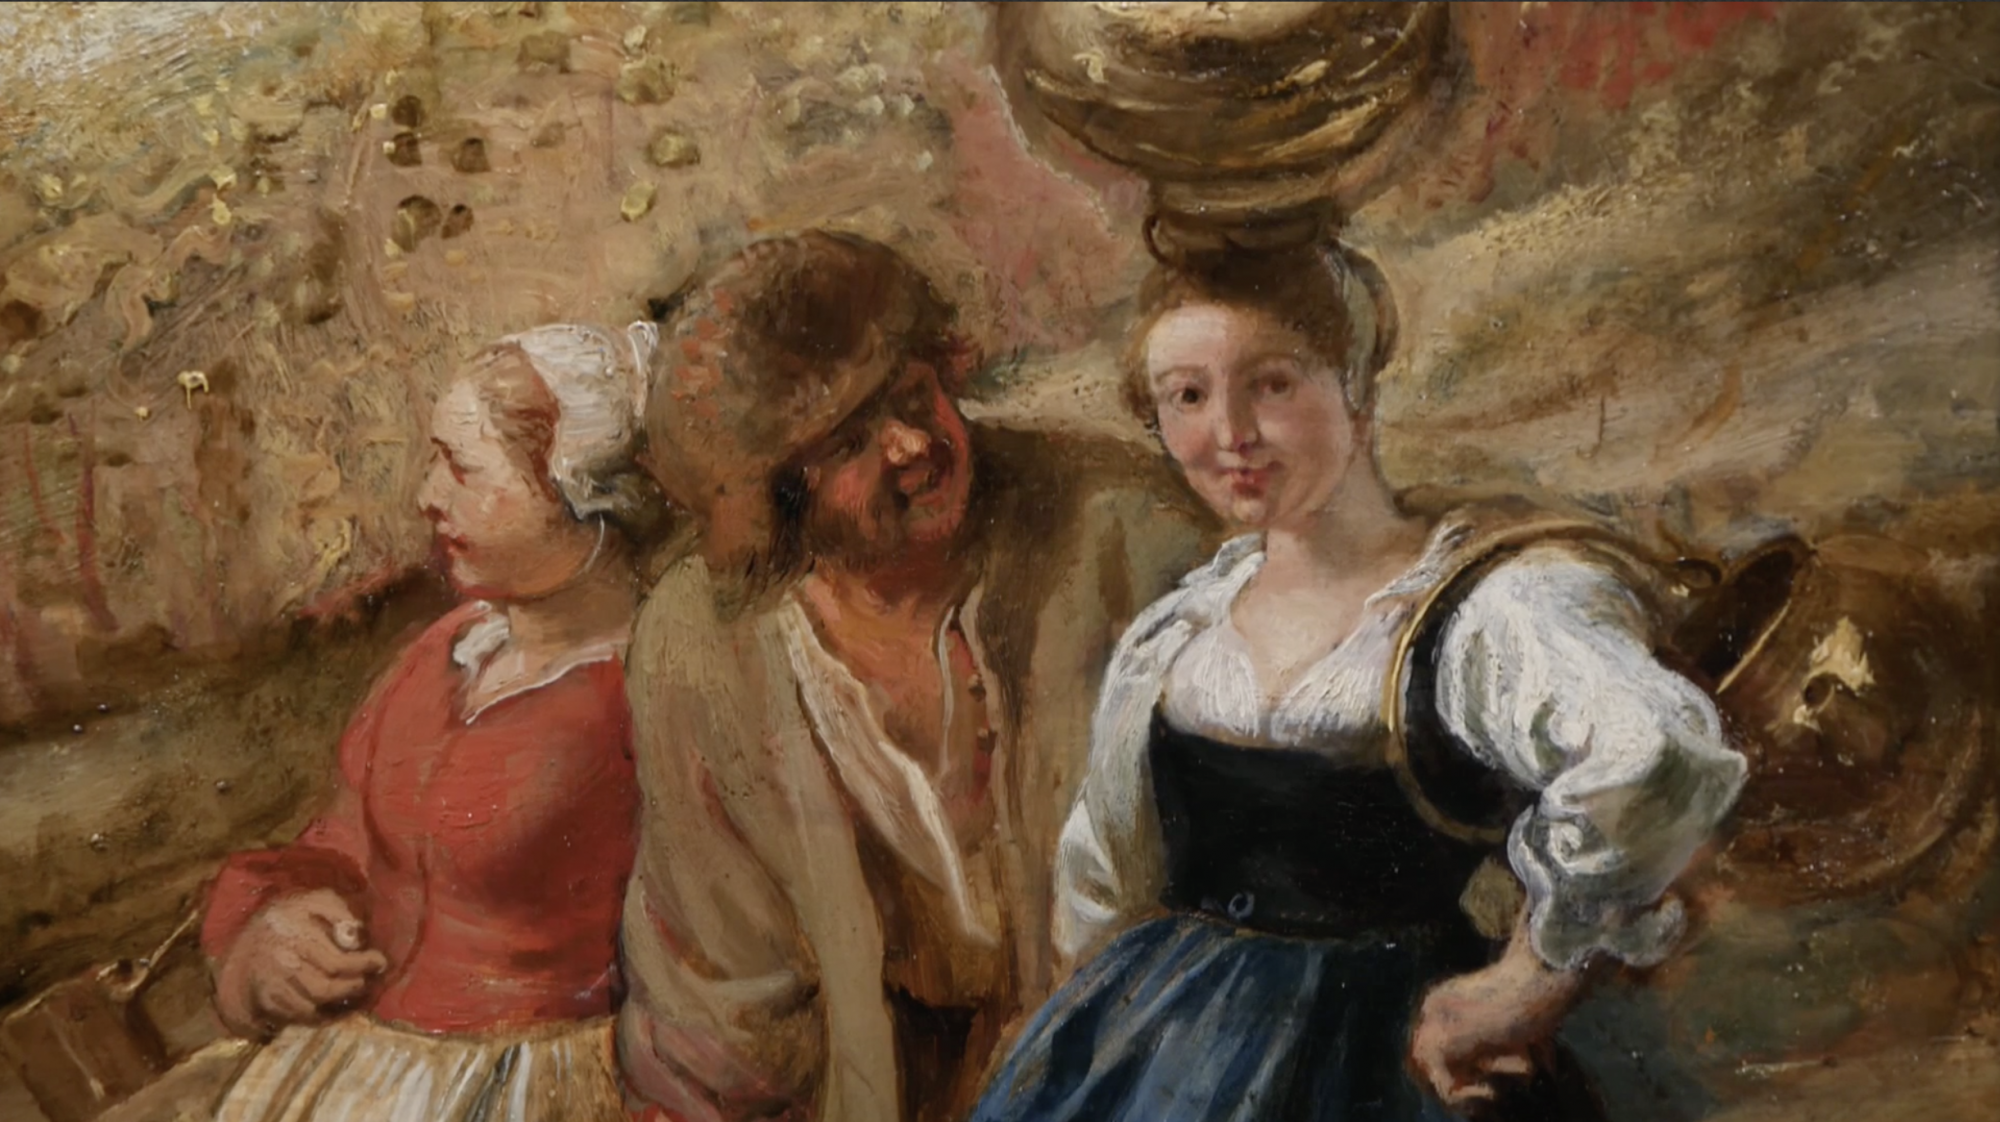 Rubens masterpieces reunited for first time in 200 years - channel 4